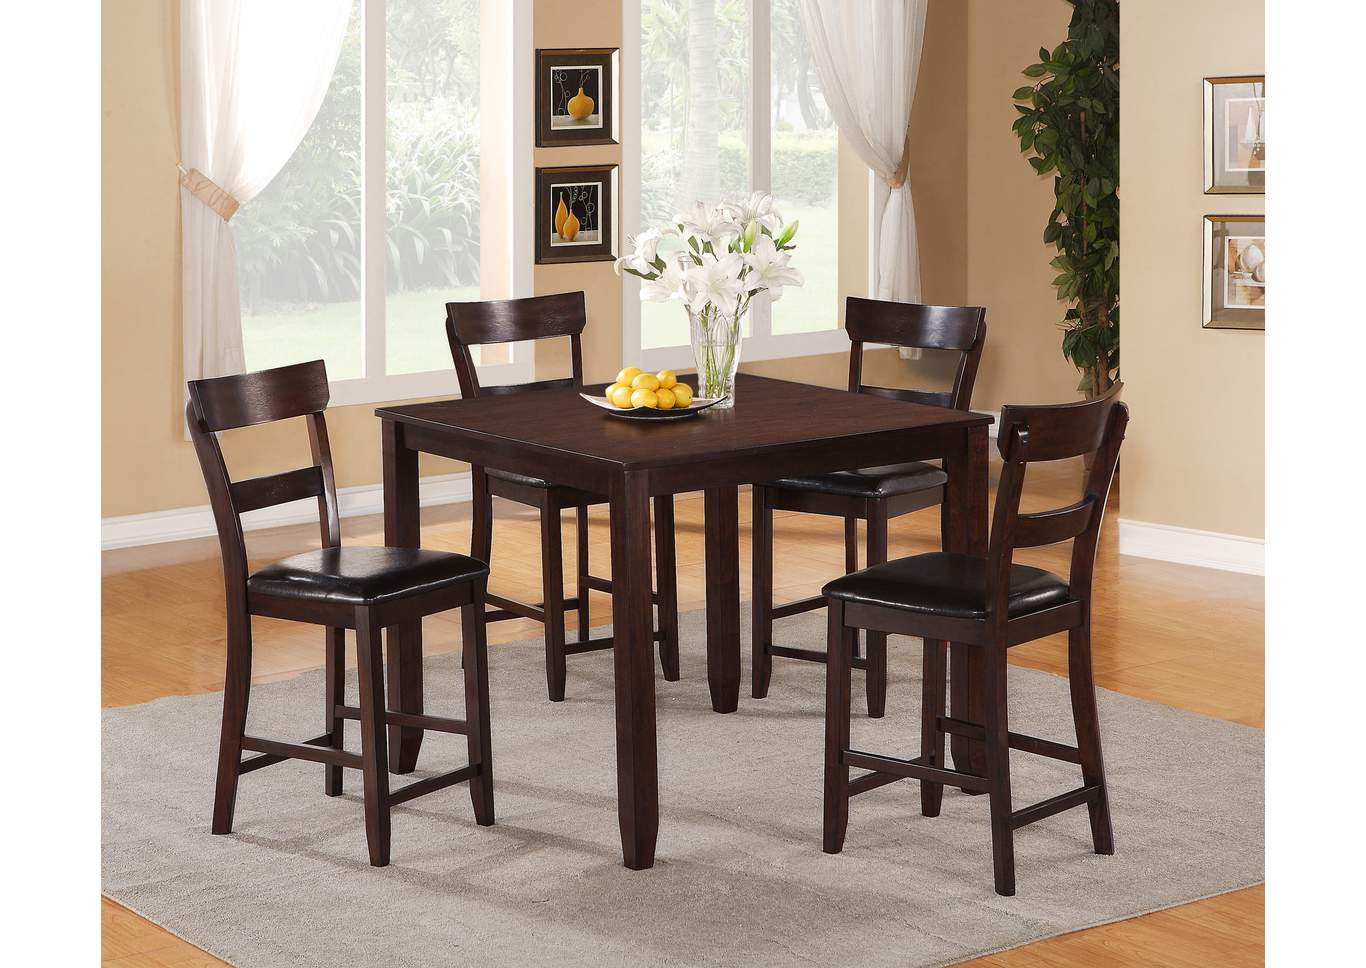 Henderson Brown Counter Height Dinette W/ 4 Chairs,Crown Mark